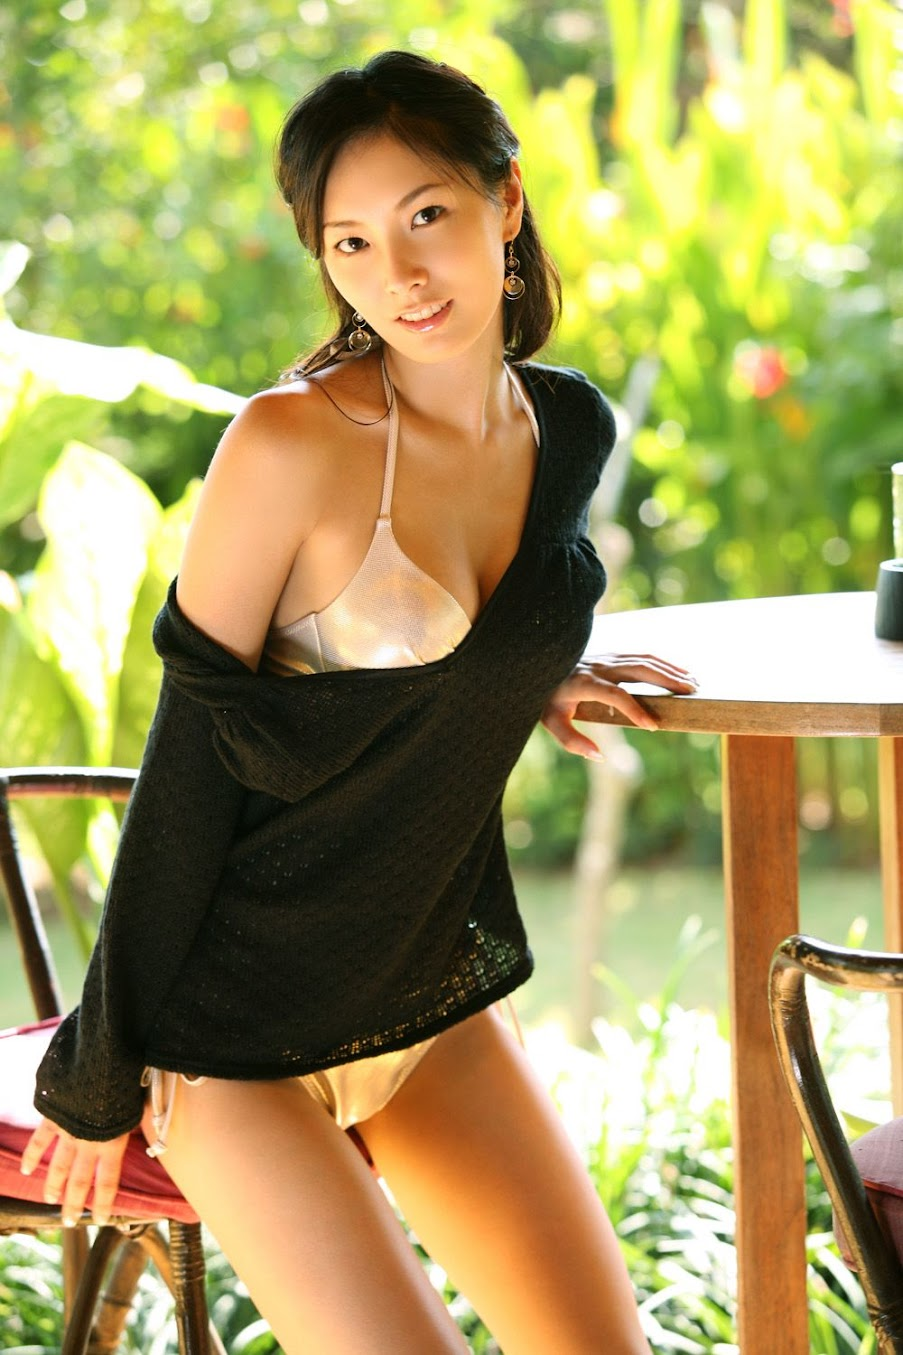 Nao Nagasawa - Japanese actress, singer & model